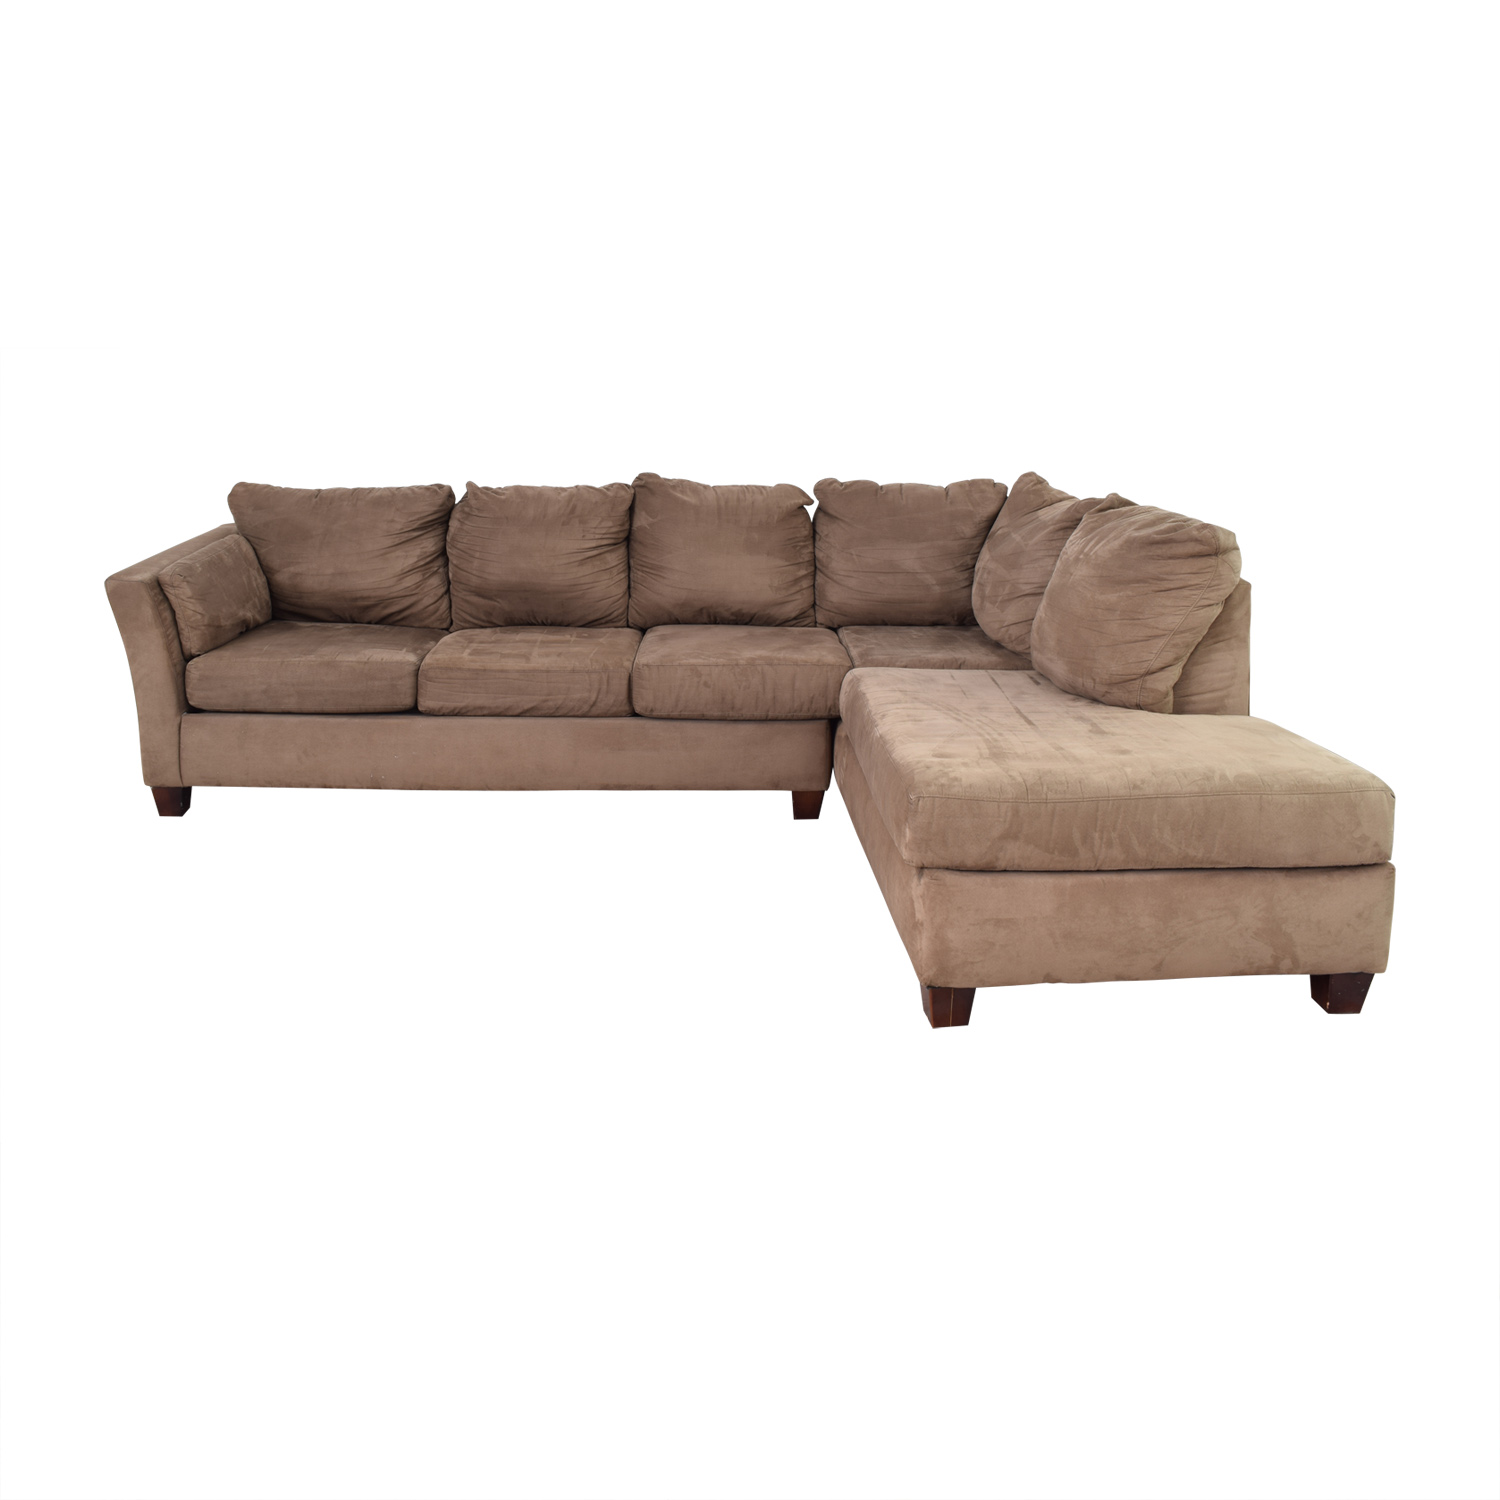 American Furniture American Furniture L-Shaped Sectional price